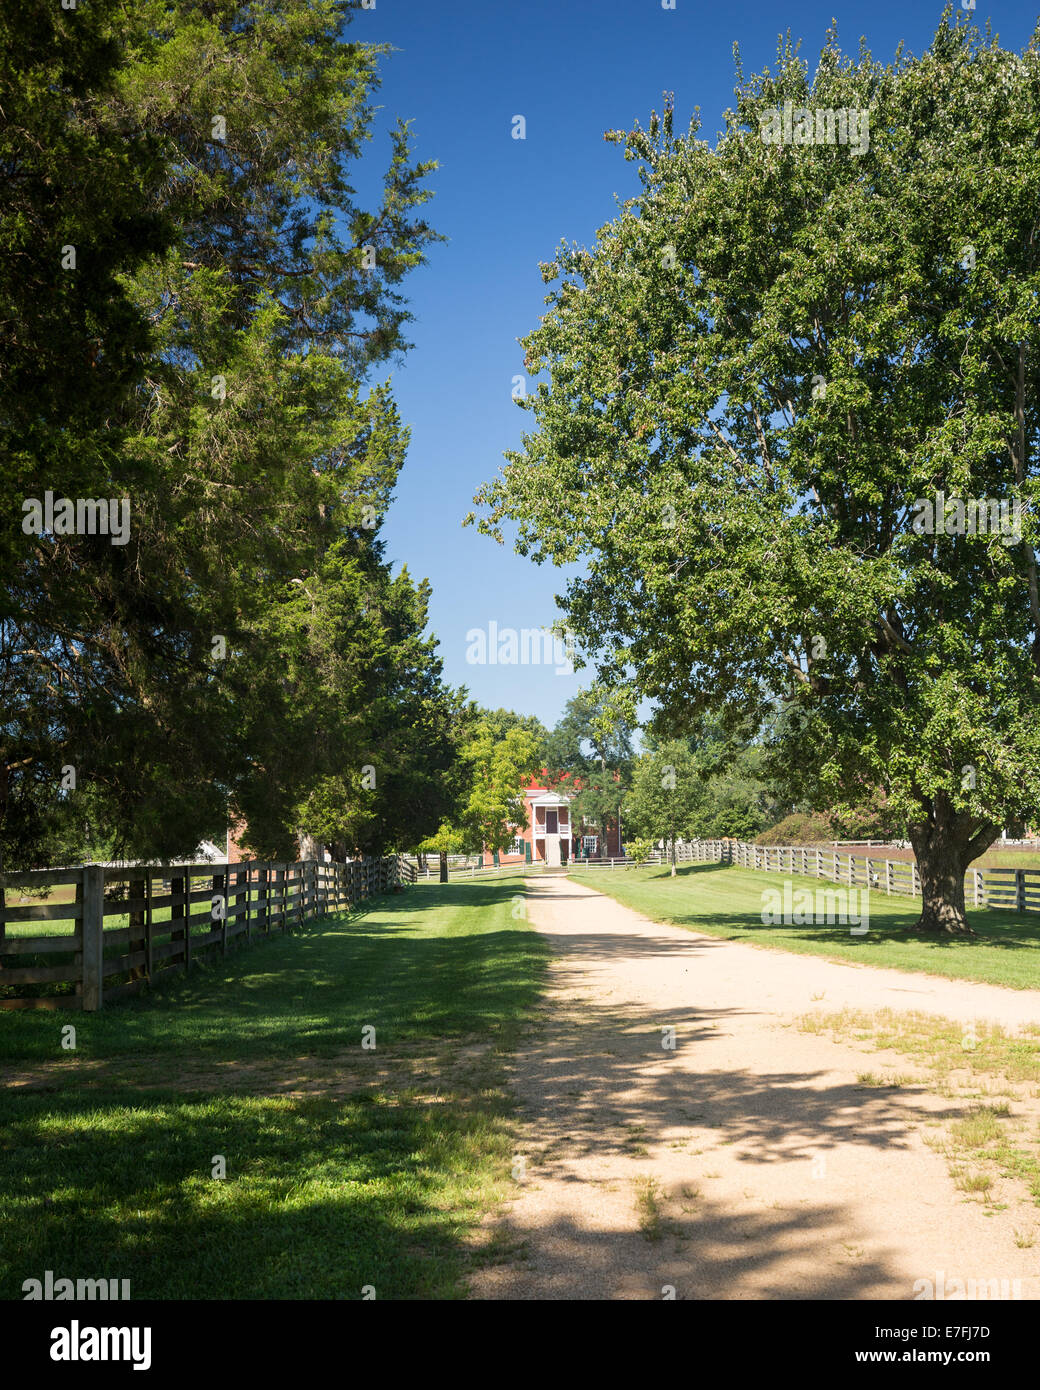 Appomattox site of the surrender of Southern Army under General Robert E Lee to Ulysses S Grant April 9, 1865 - Stock Image